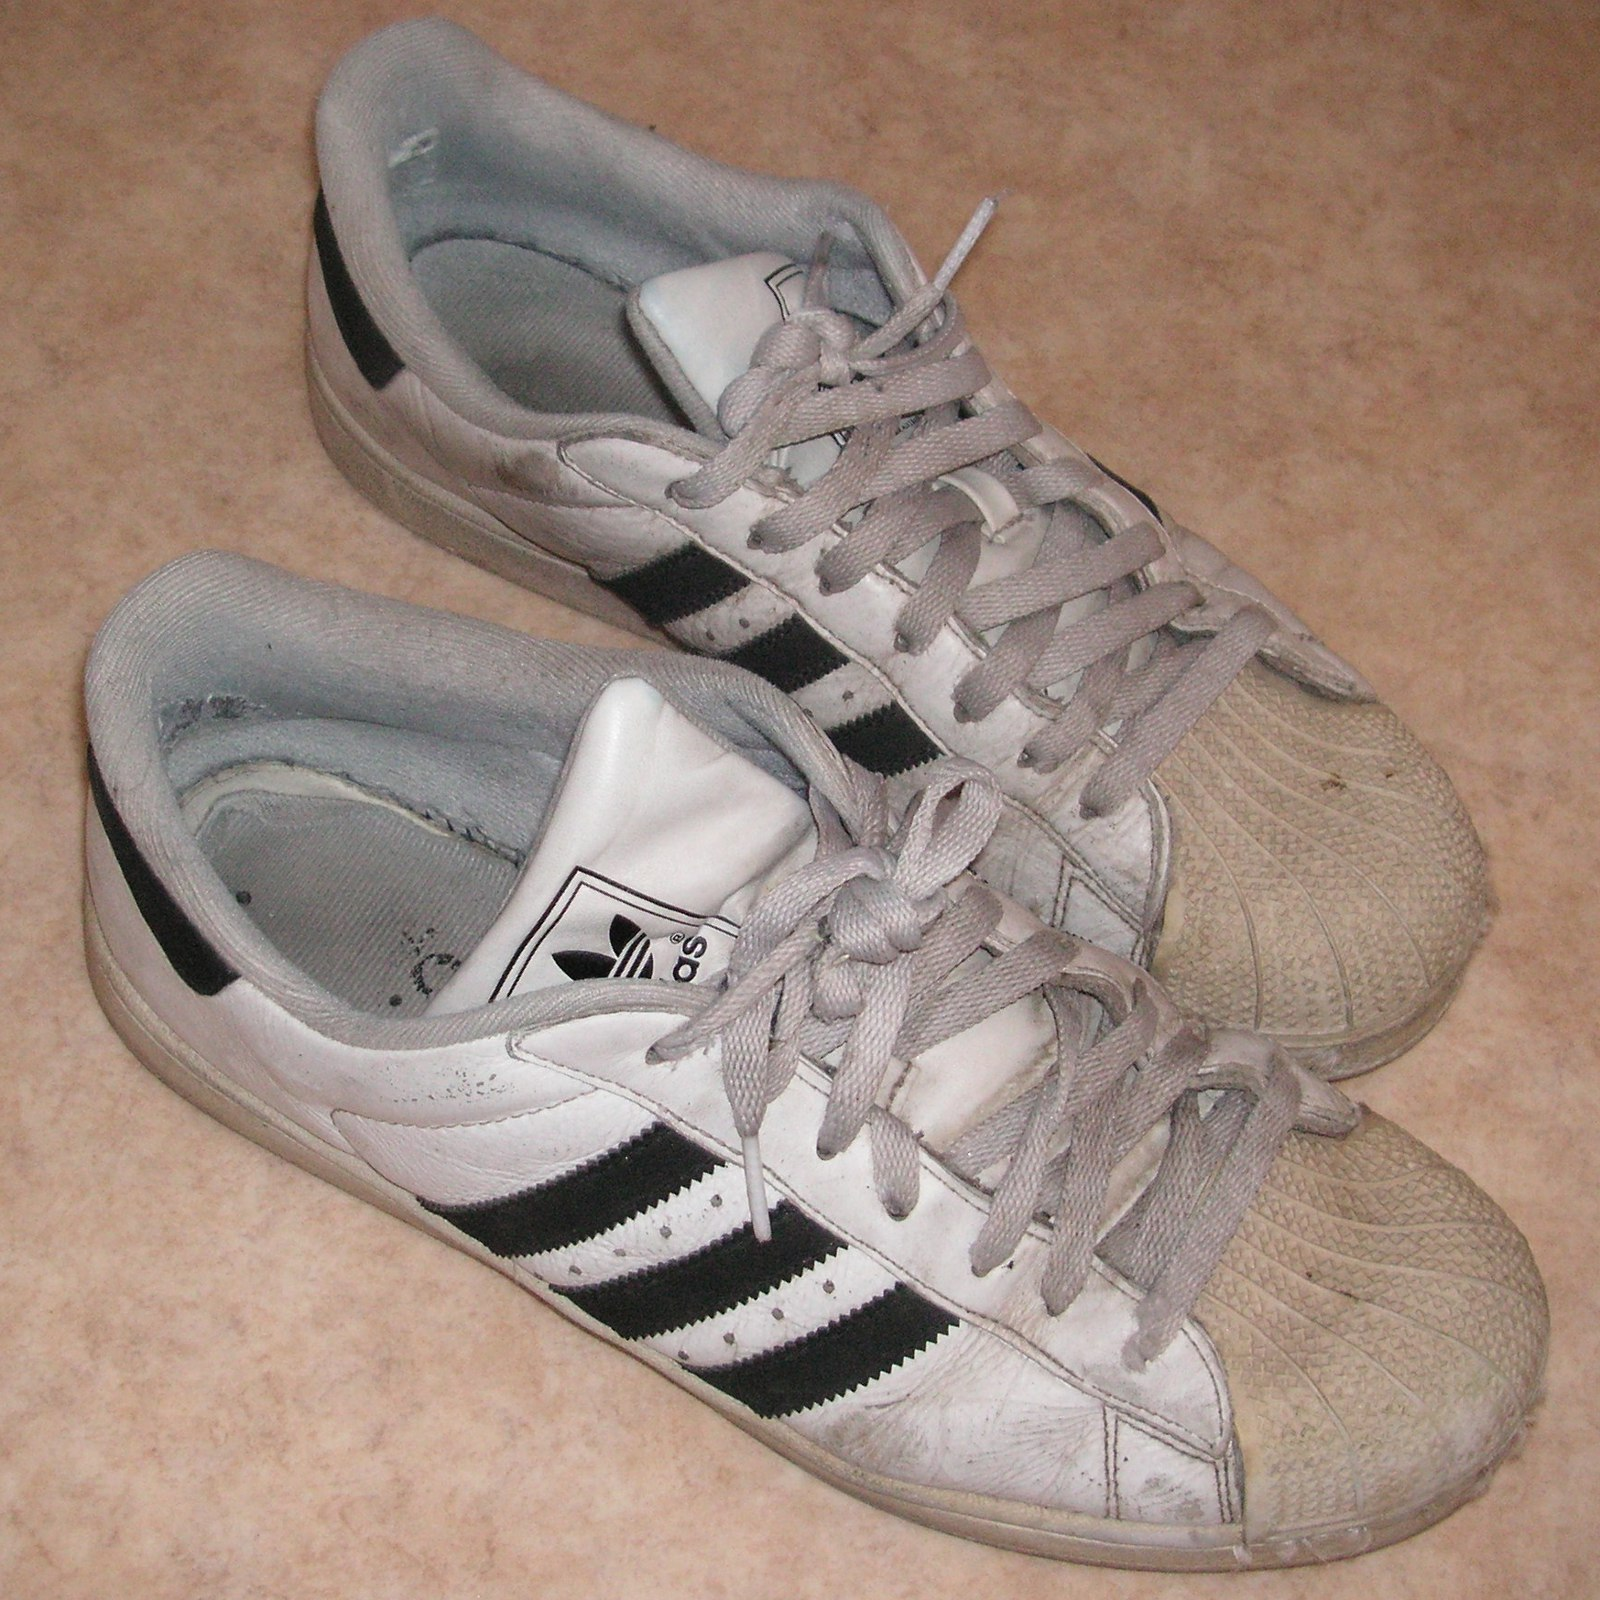 Http Www Adidas Com Us Suciu Adv Shoes Bb Html